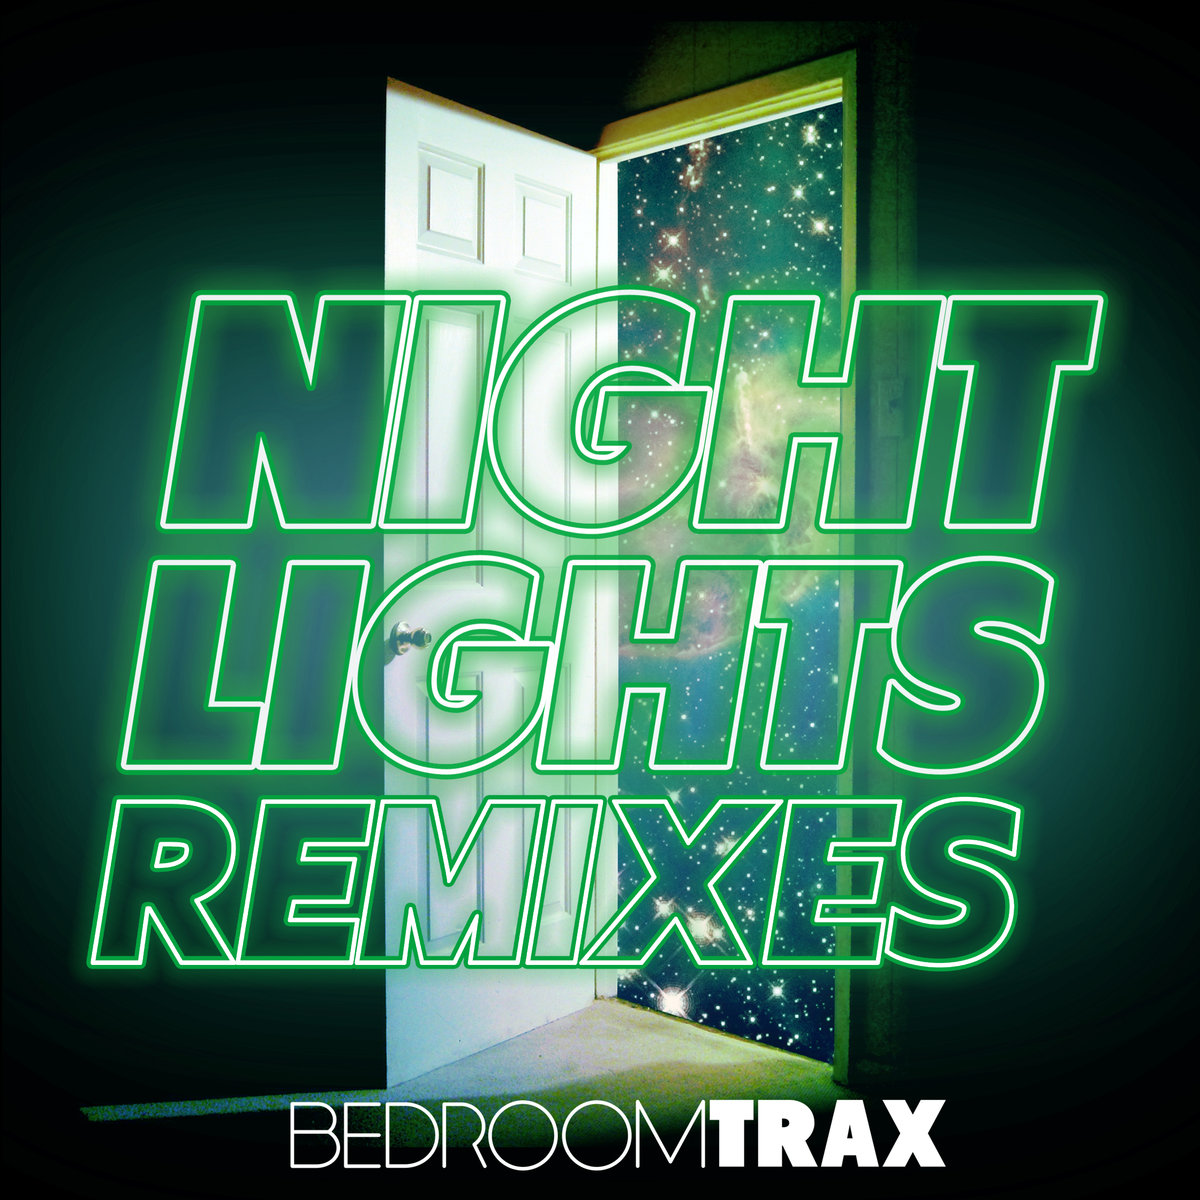 BedroomTrax - Cruise the Cosmos (POCKiTZ Remix) @ 'Night Lights Remixes' album (electronic, dubstep)